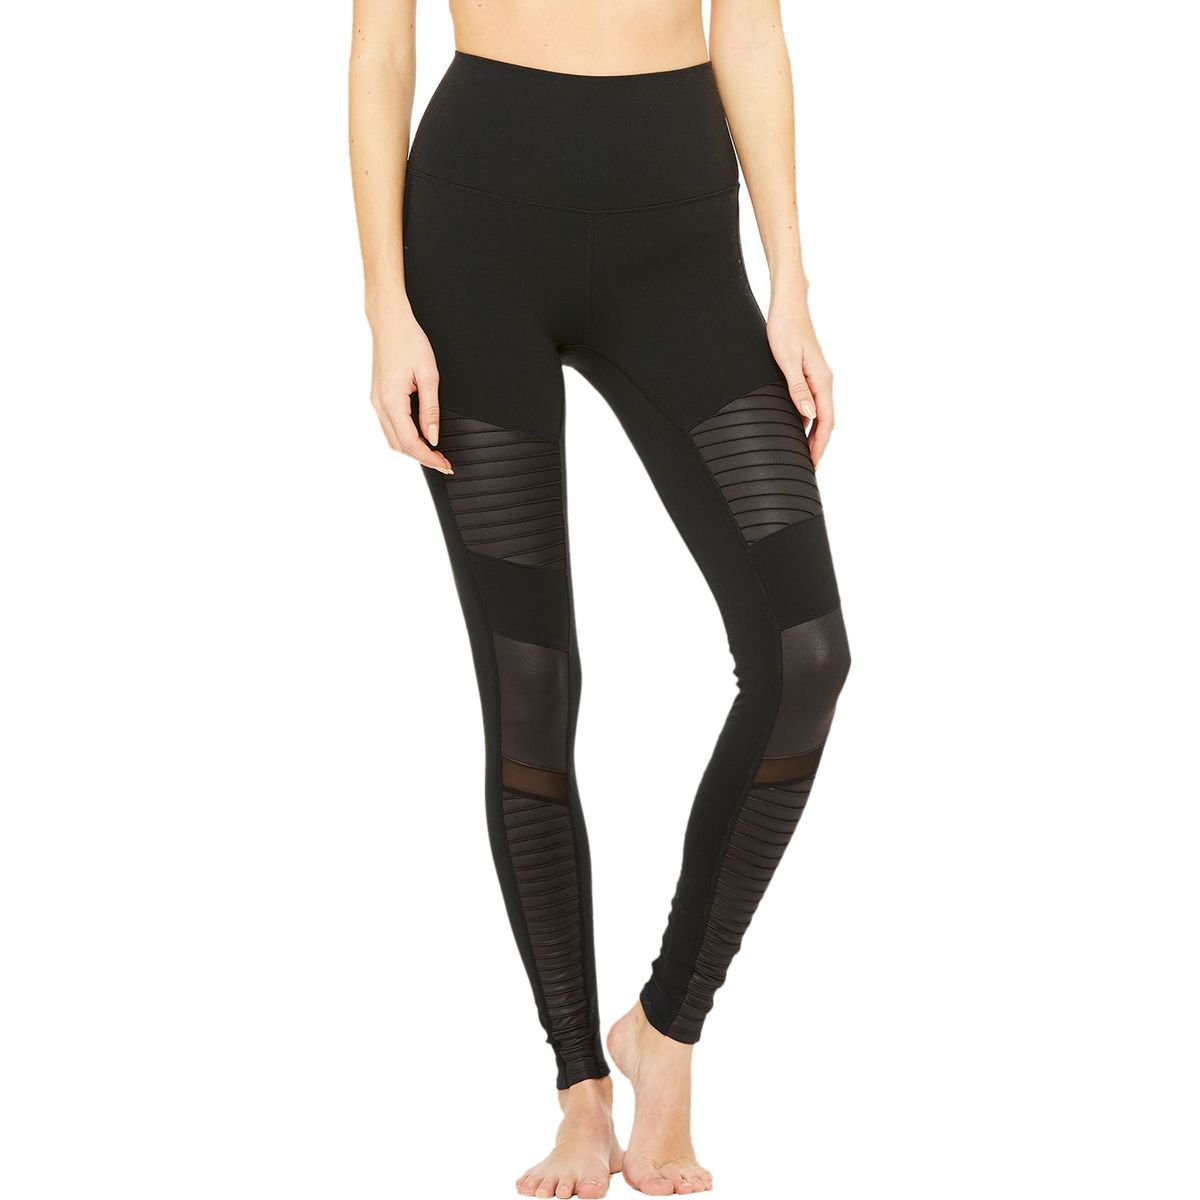 Black Black Glossy Alo Yoga Women's High Waist Moto Legging